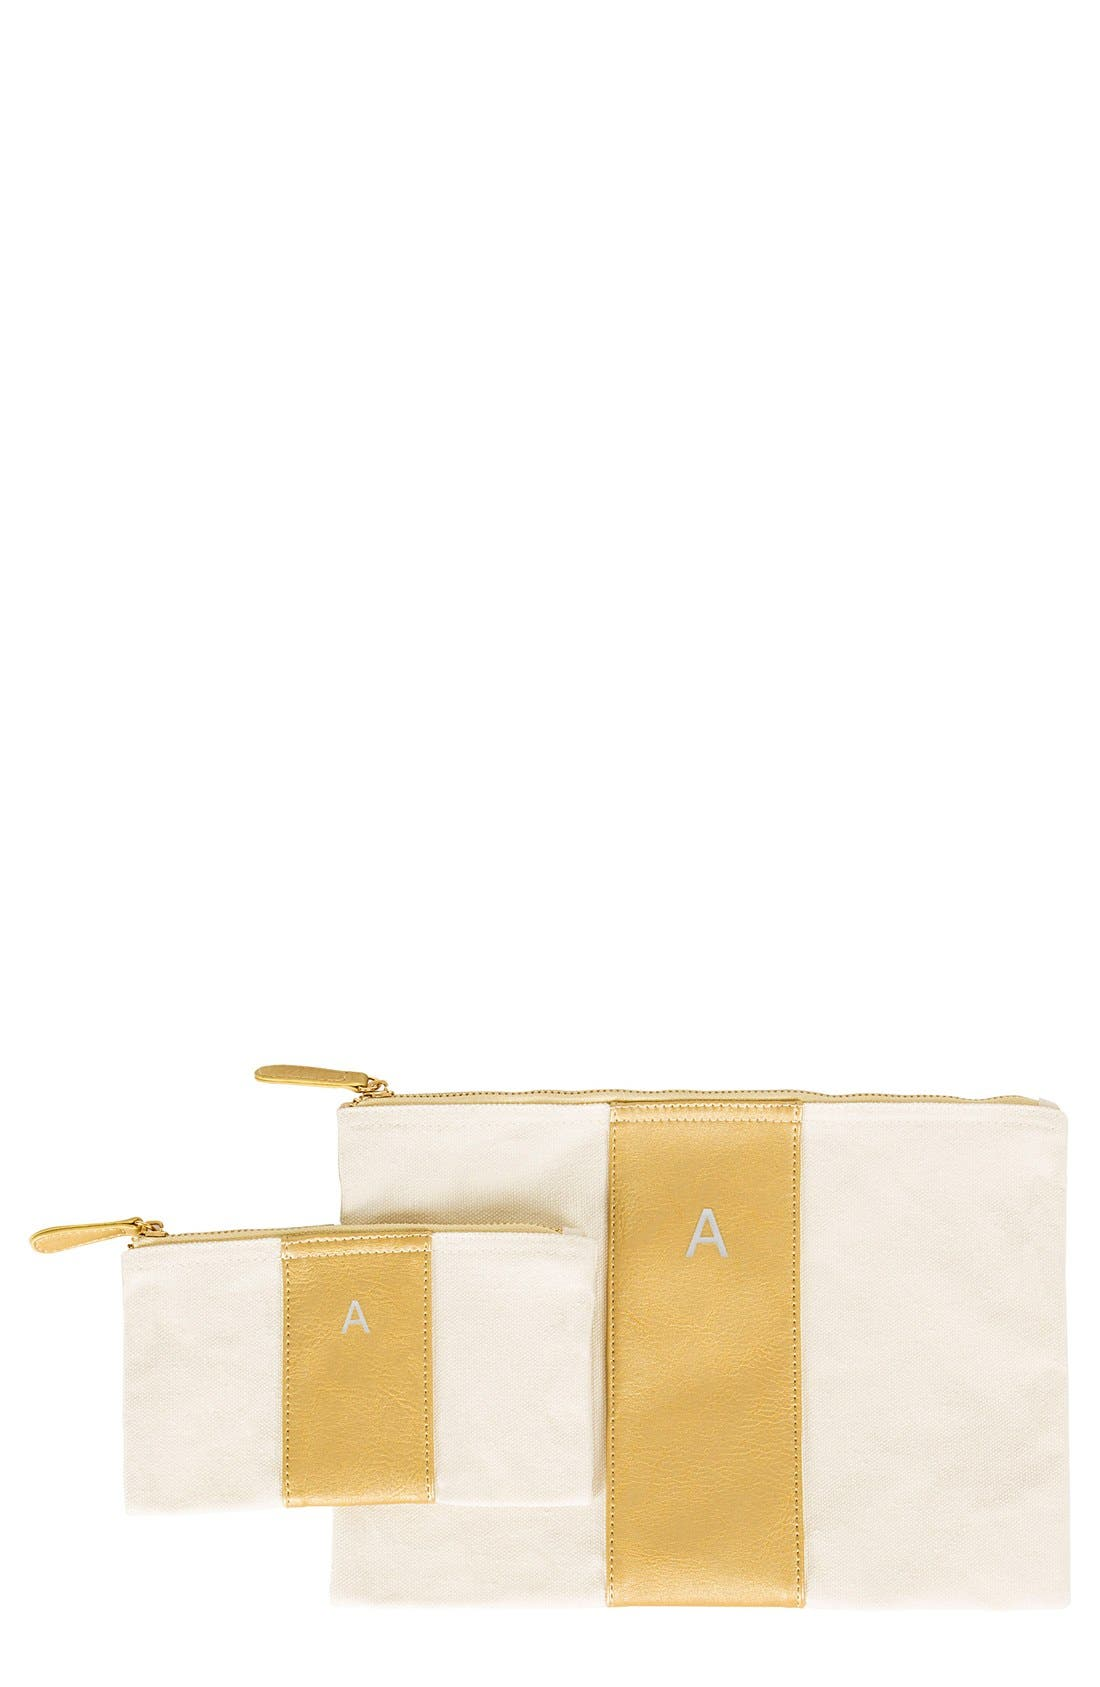 CATHYS CONCEPTS Personalized Faux Leather Clutch